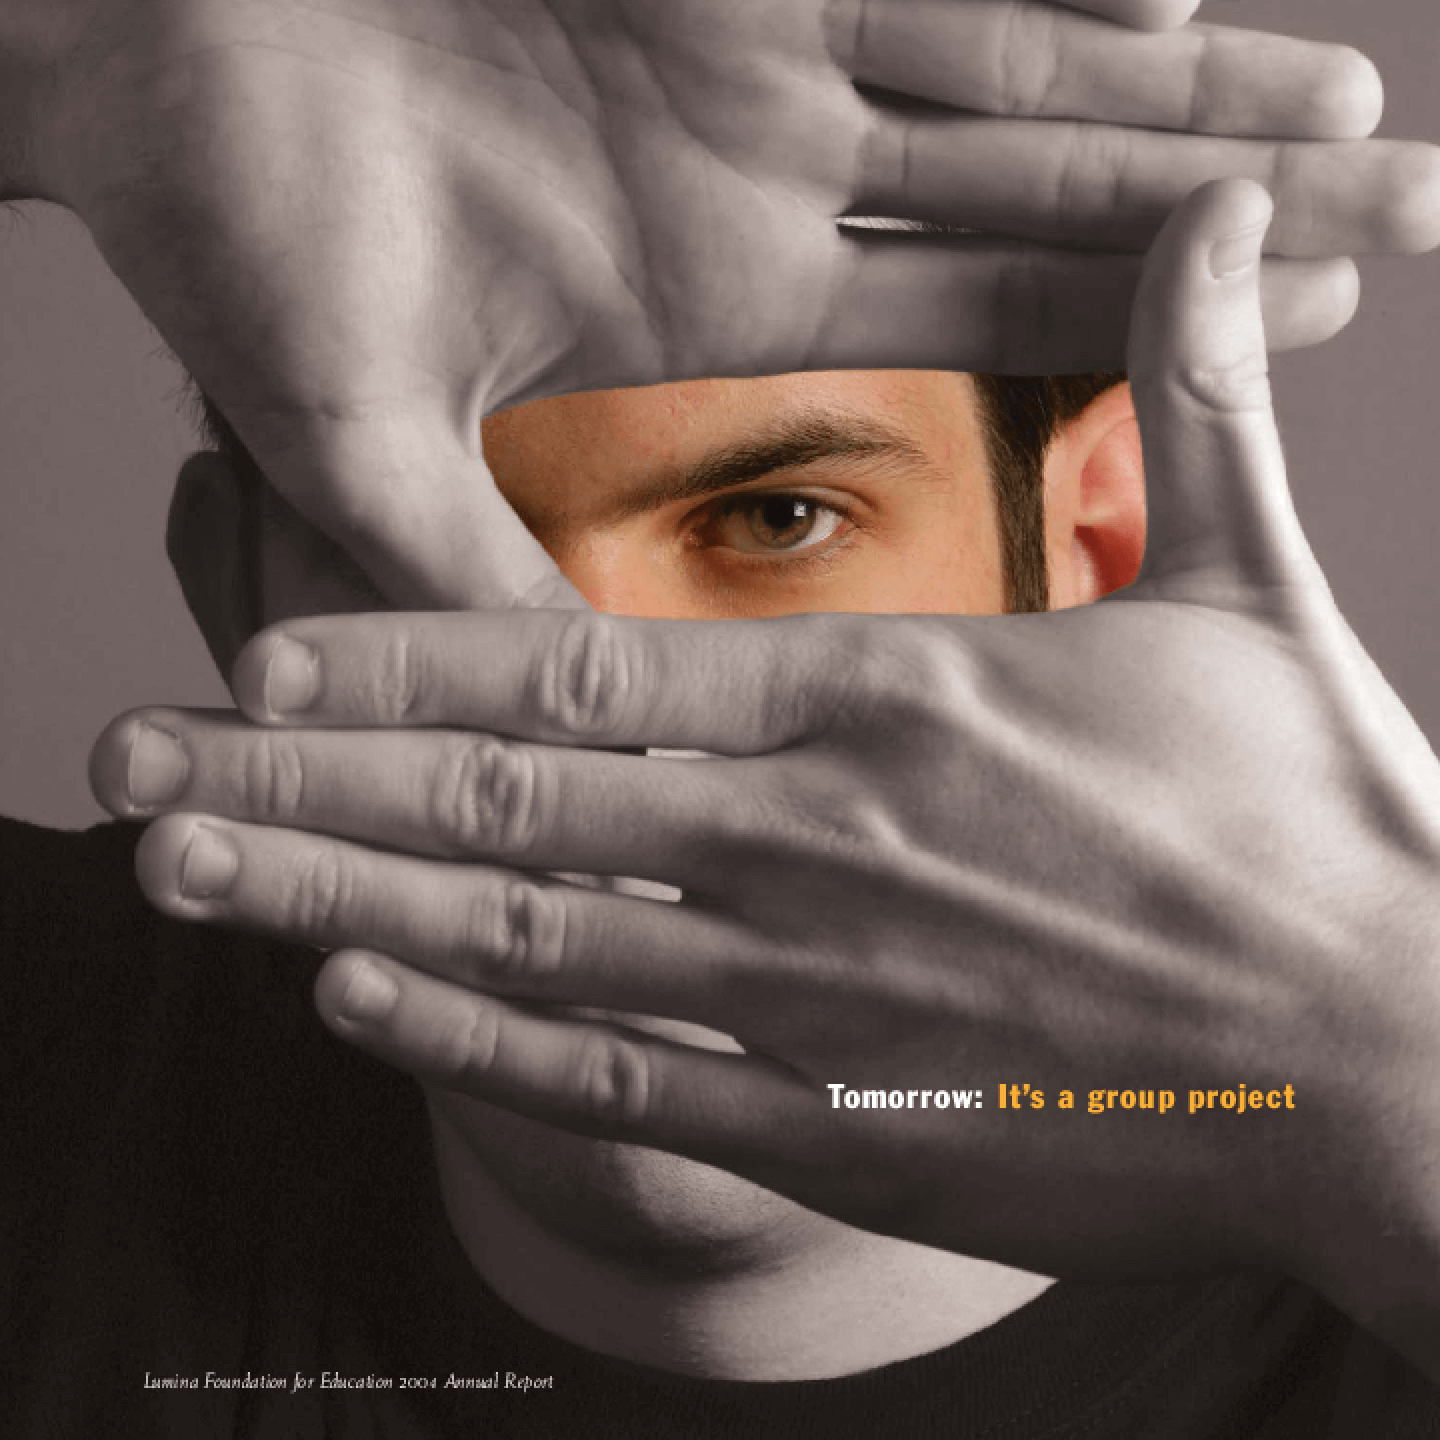 Lumina Foundation for Education - 2004 Annual Report